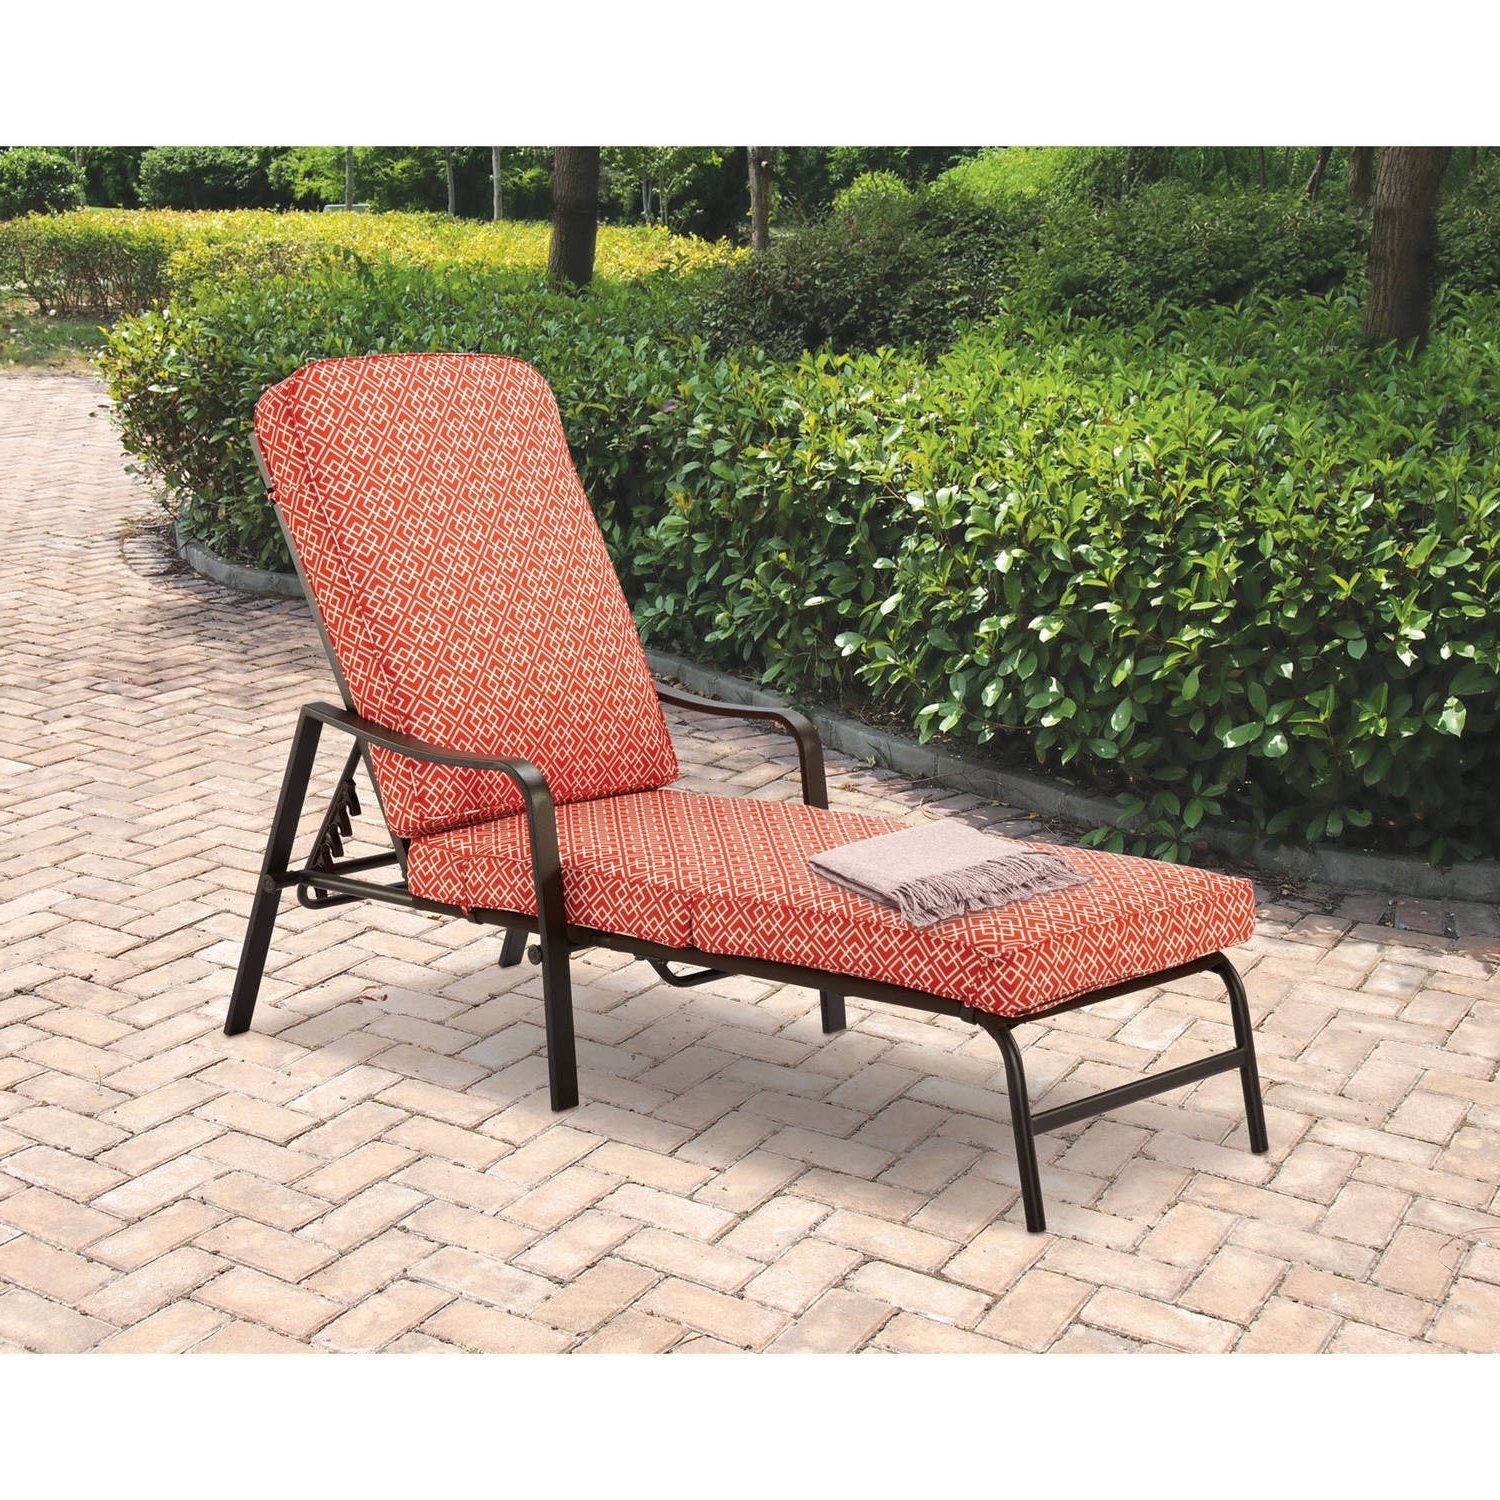 Well Known Walmart Chaise Lounges Intended For Mainstays Outdoor Chaise Lounge, Orange Geo Pattern – Walmart (View 10 of 15)